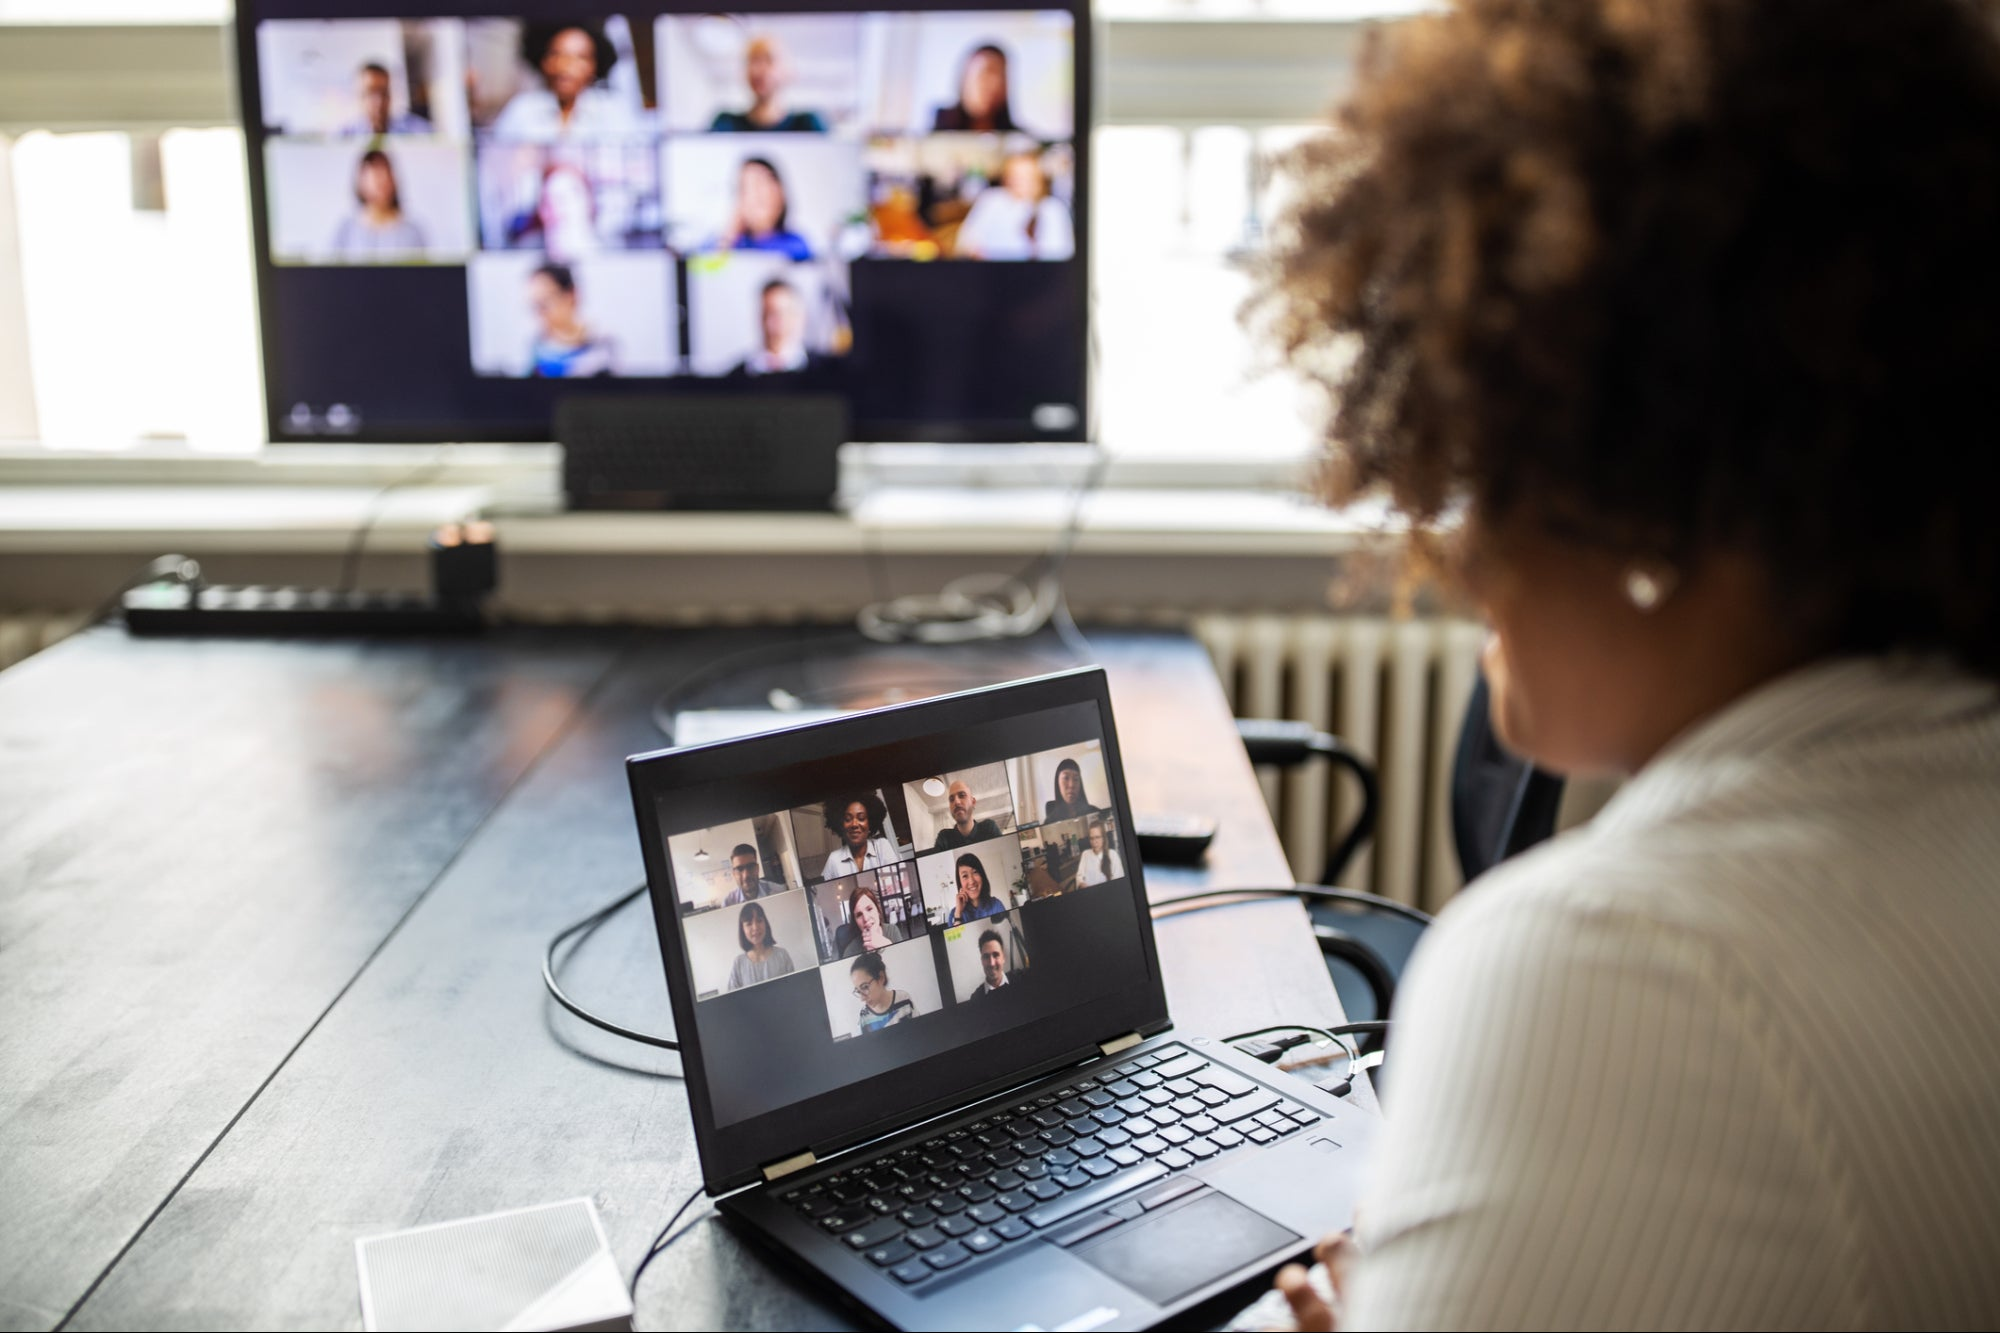 4 Ways to Effectively Manage and Lead Teams Virtually